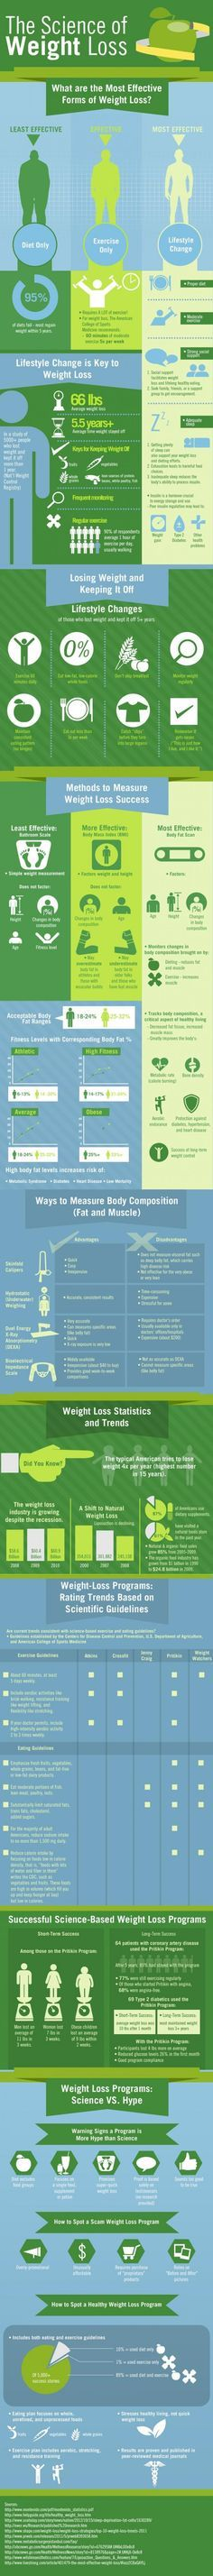 Use These Amazing Fitness Tips Along with the Brand New Weight Loss Supplement Shape Shifter for Super Fast Weight Loss!